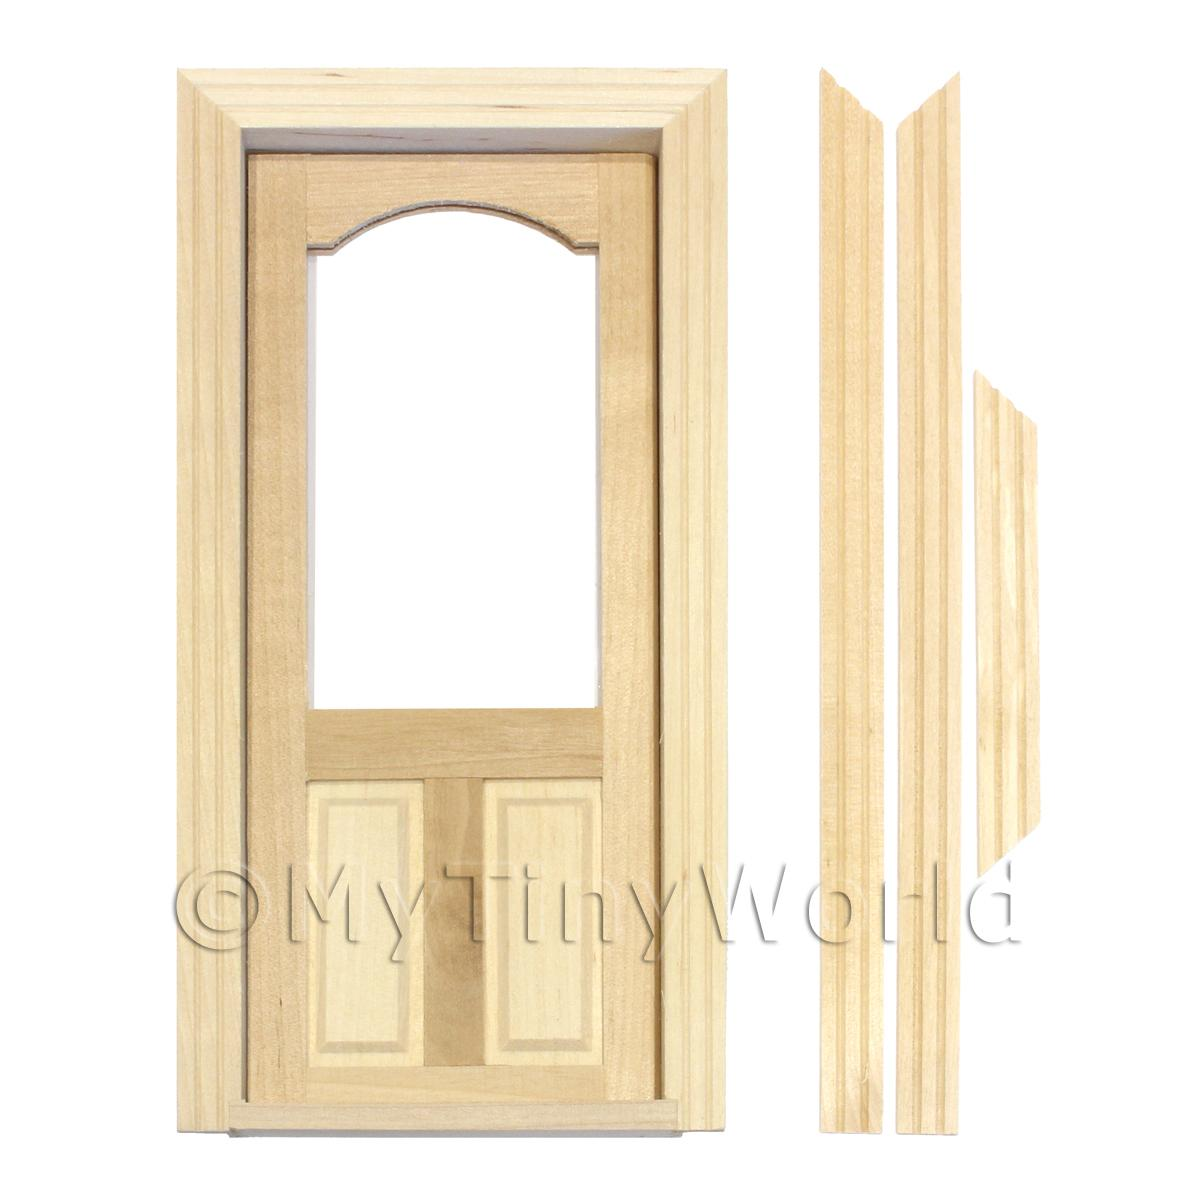 1/12 Scale Dolls House Miniatures  | Dolls House Decorative Wood Door With Glazed Upper Panel